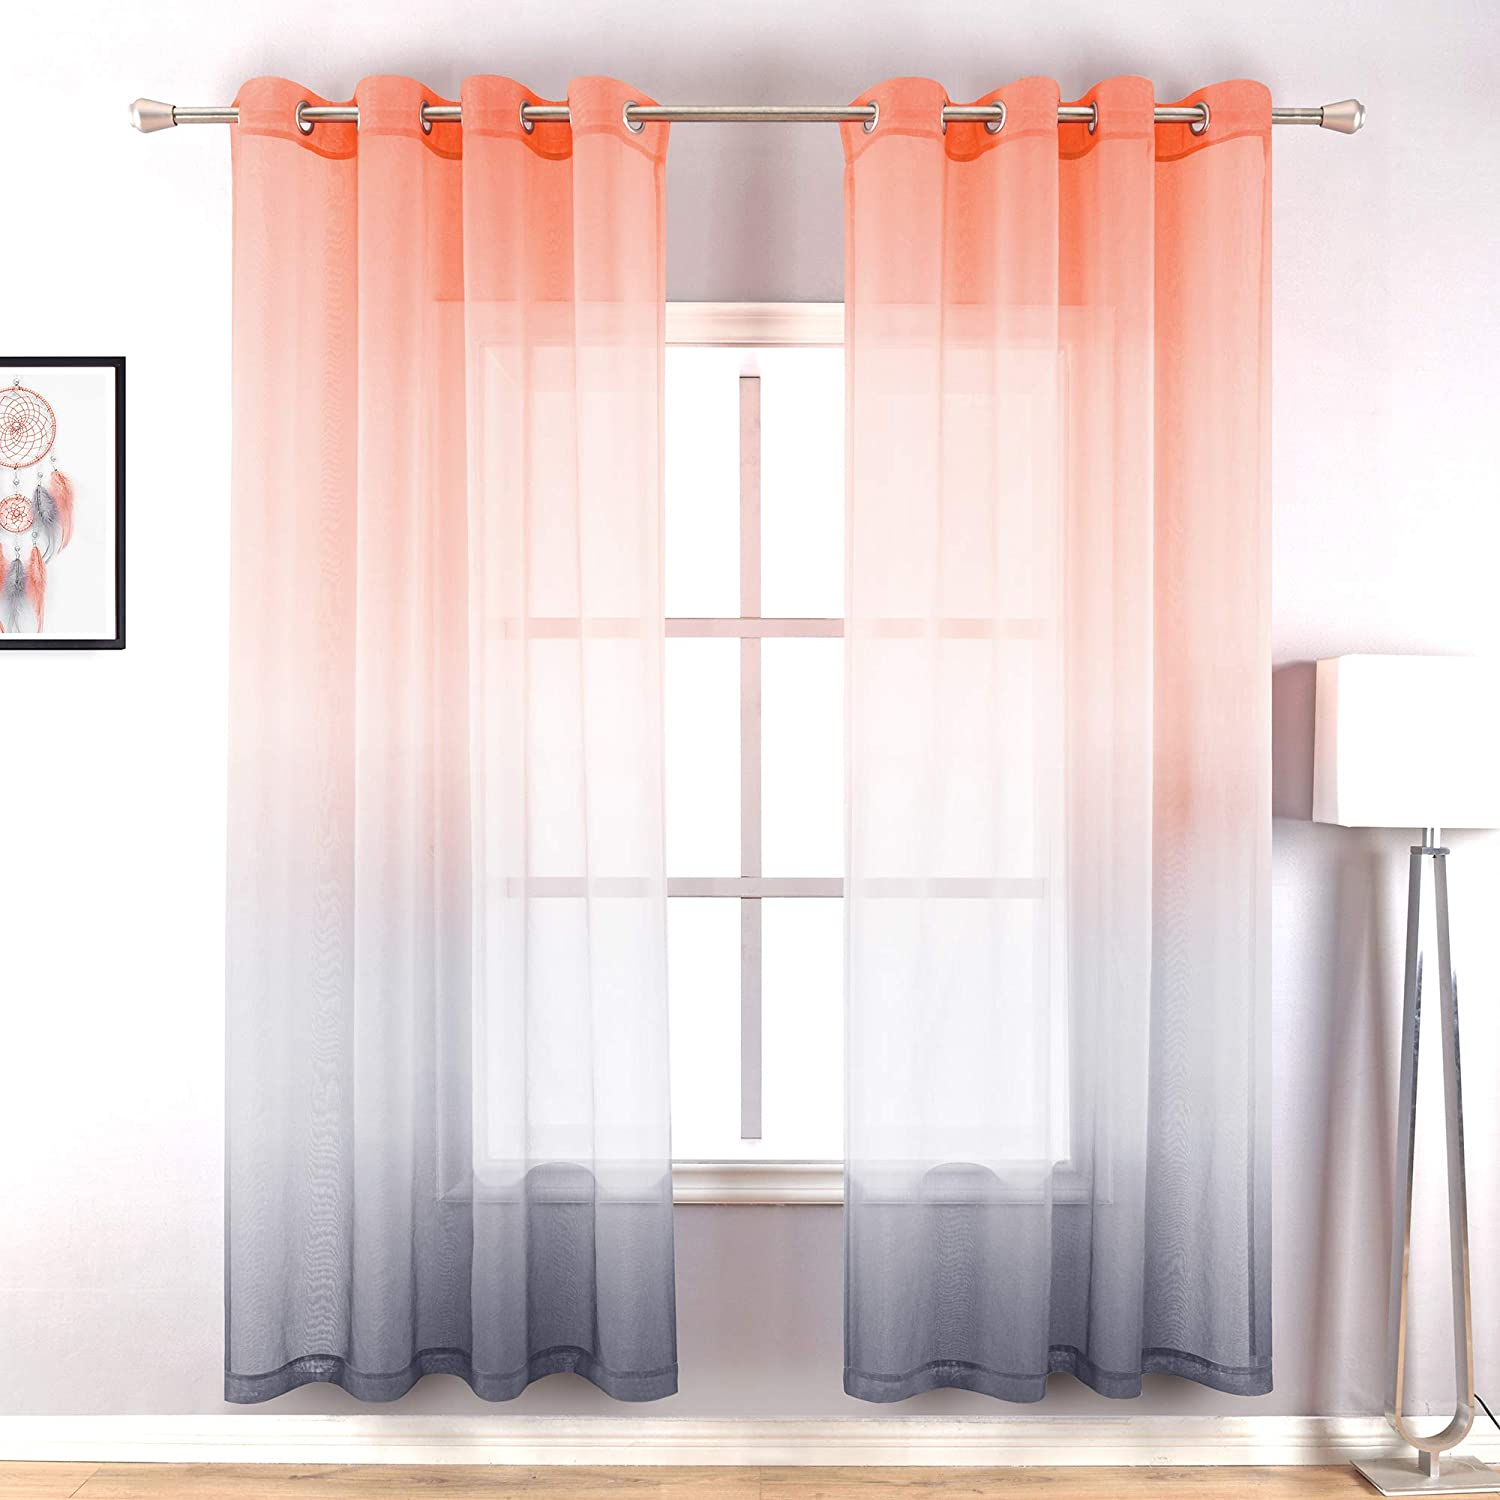 Coral and Gray Curtains for Bathroom Decor Set of 2 Panels Grommet Window Voile Drapes Faux Linen Ombre Sheer Curtains for Living Room Girls Bedroom Salmon and Grey 52 x 63 Inch Length